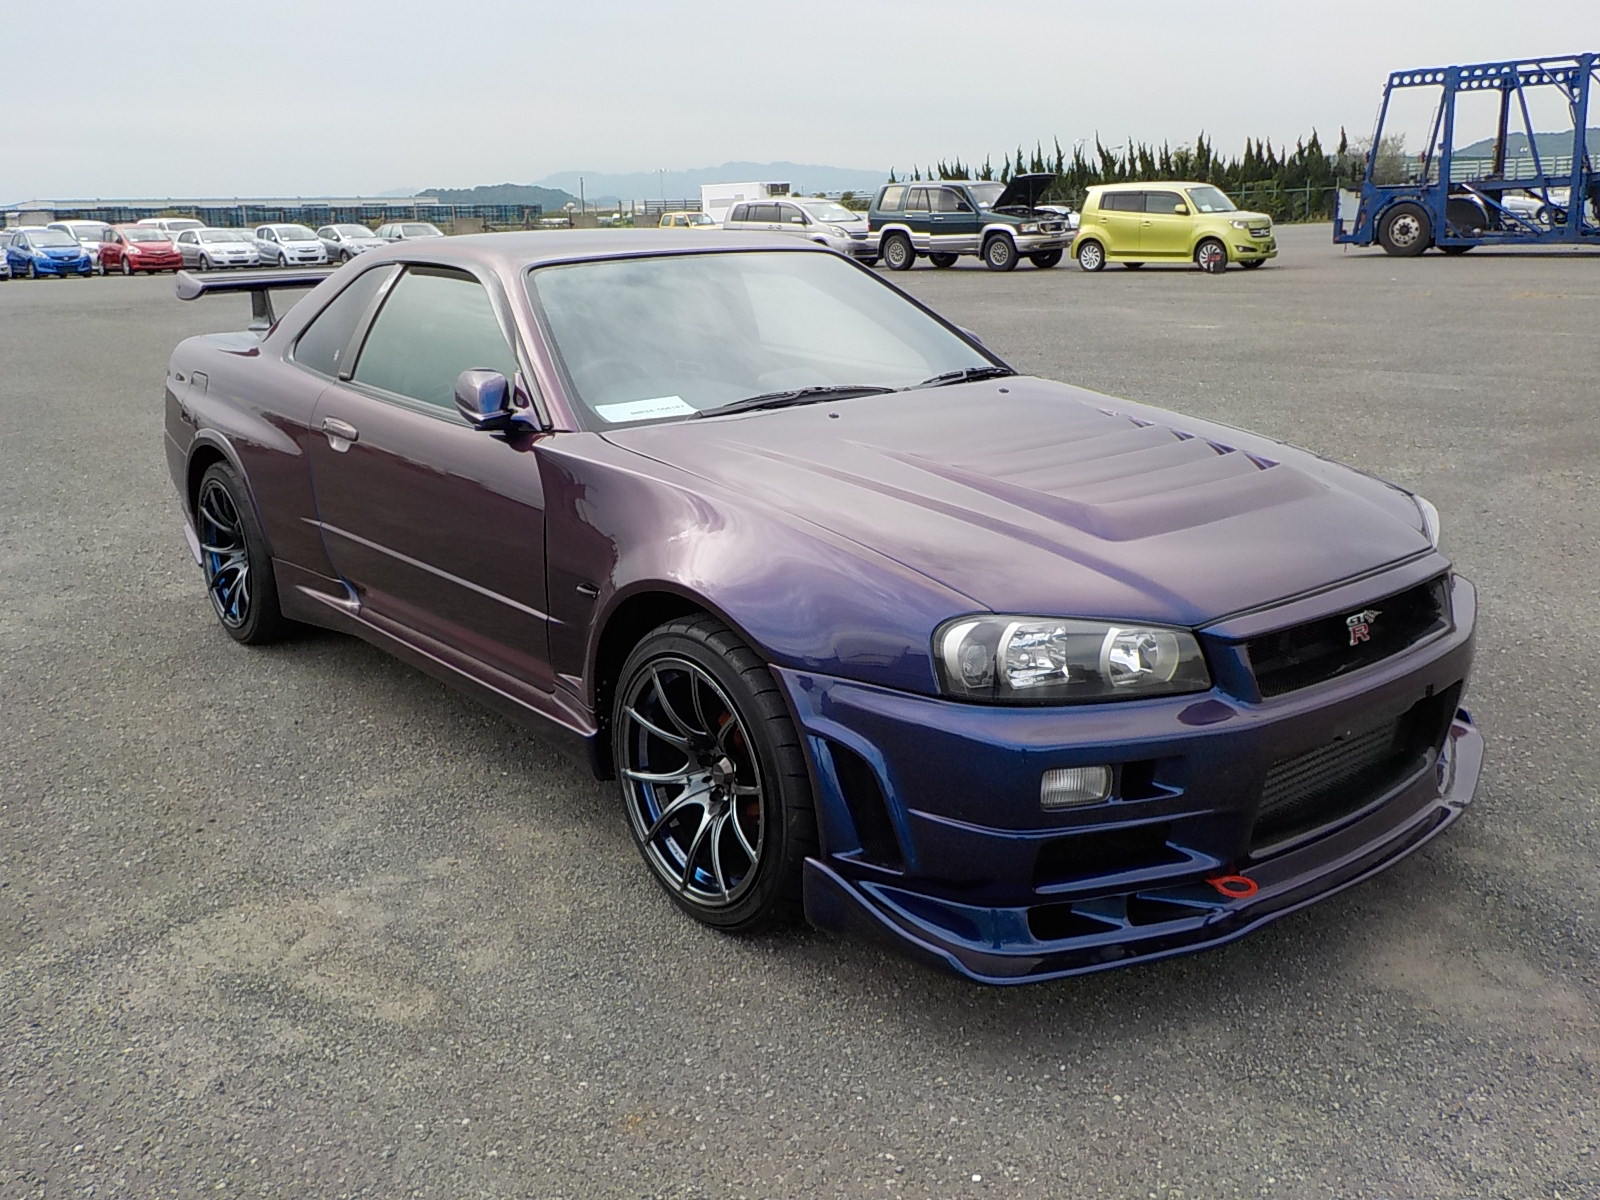 1999 nissan skyline r34 gtr v spec 600ps. Black Bedroom Furniture Sets. Home Design Ideas